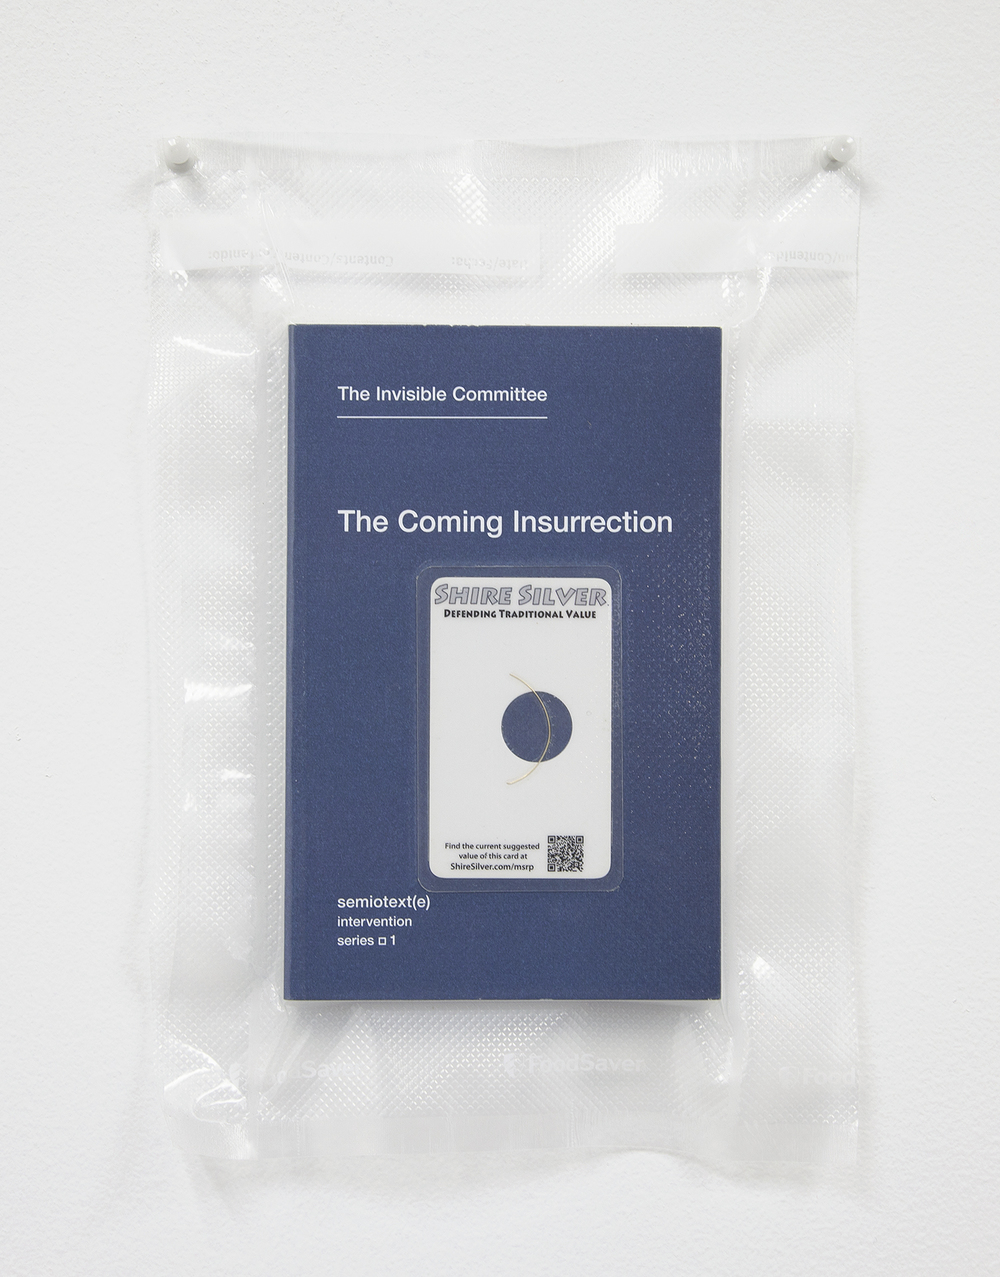 TSA No Fly List Vacuum Sealed Invisible Committee -'The Coming Insurrection' with $10 Shire Silver laminated car  , 2013    10 x 8 inches